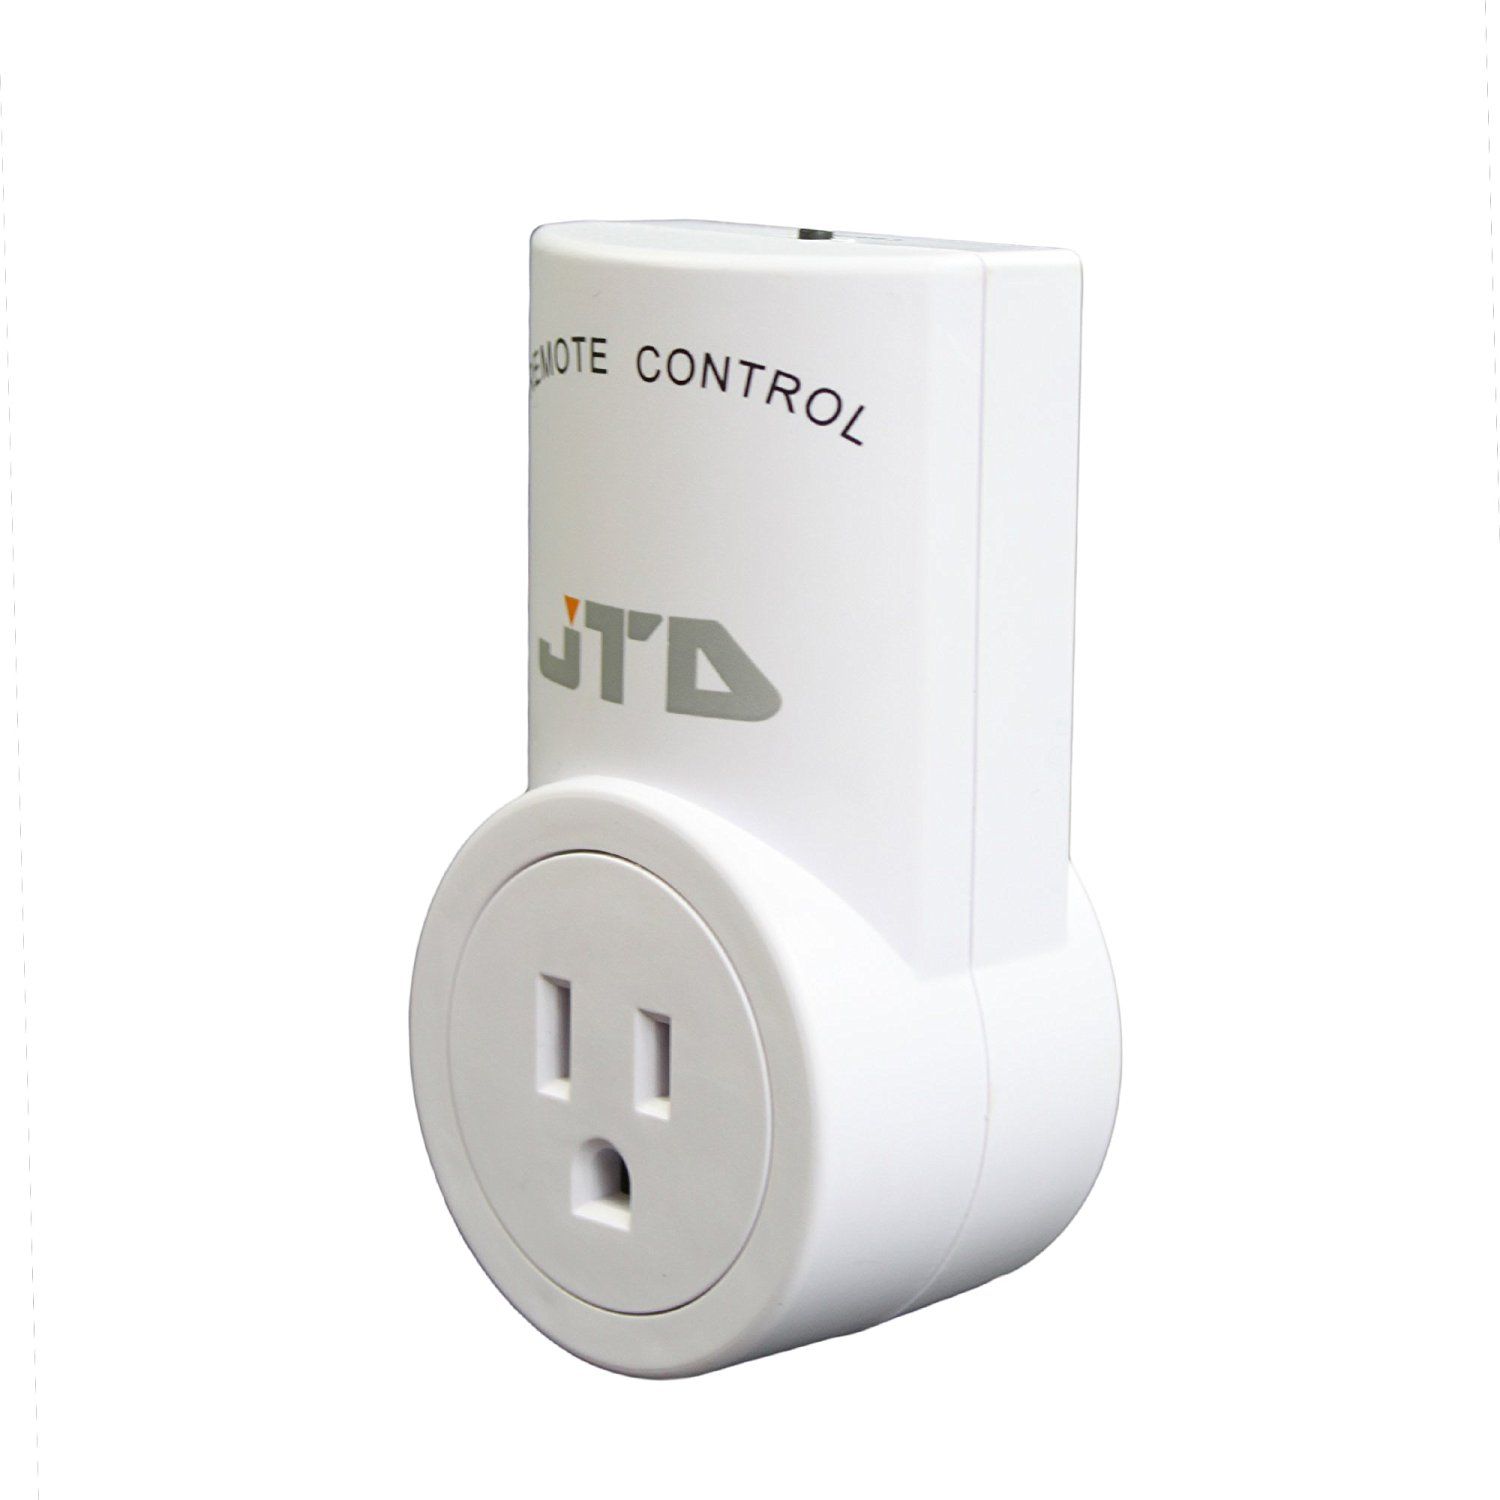 JTD Wireless Remote Control Electrical Outlet